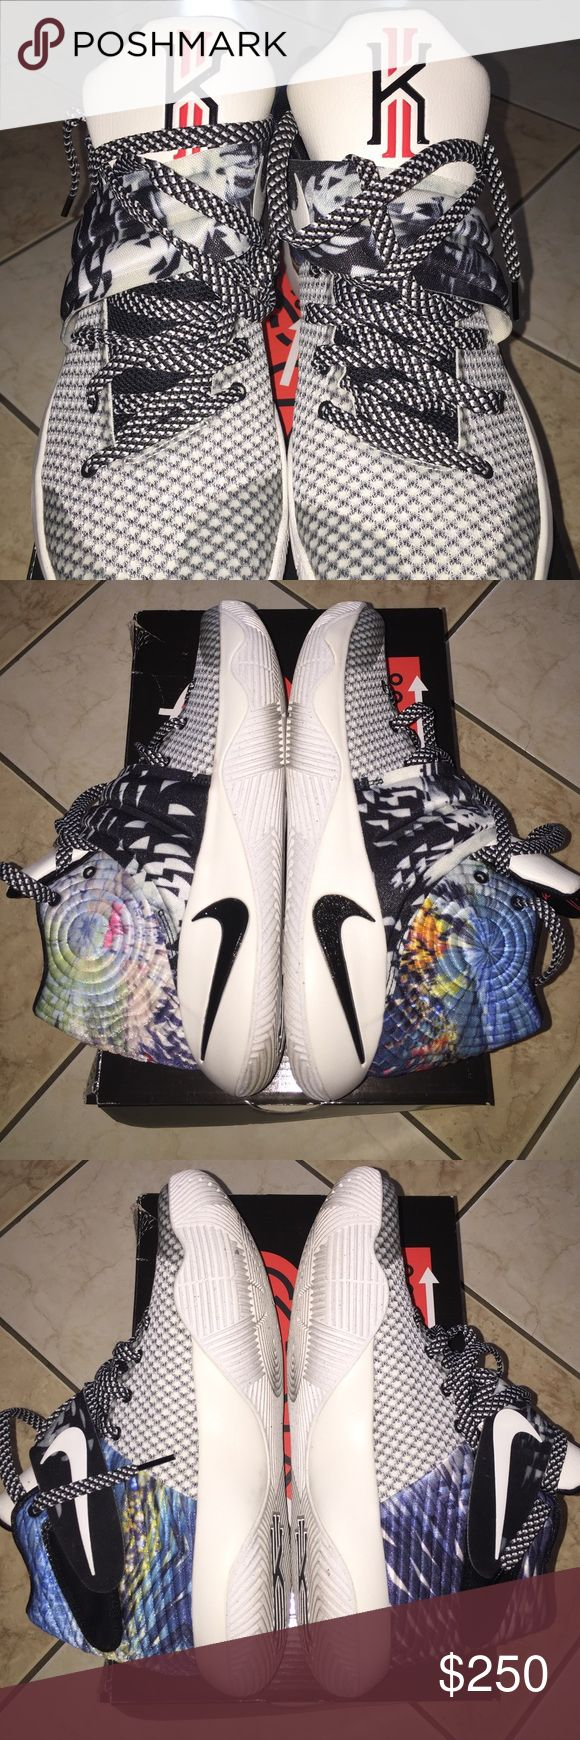 Kyrie-2 mens sneakers size 9.5 Kyrie-2 mens sneakers size 9.5, multi-color black/sail. Worn twice, great condition worn twice Kyrie Irving Shoes Sneakers